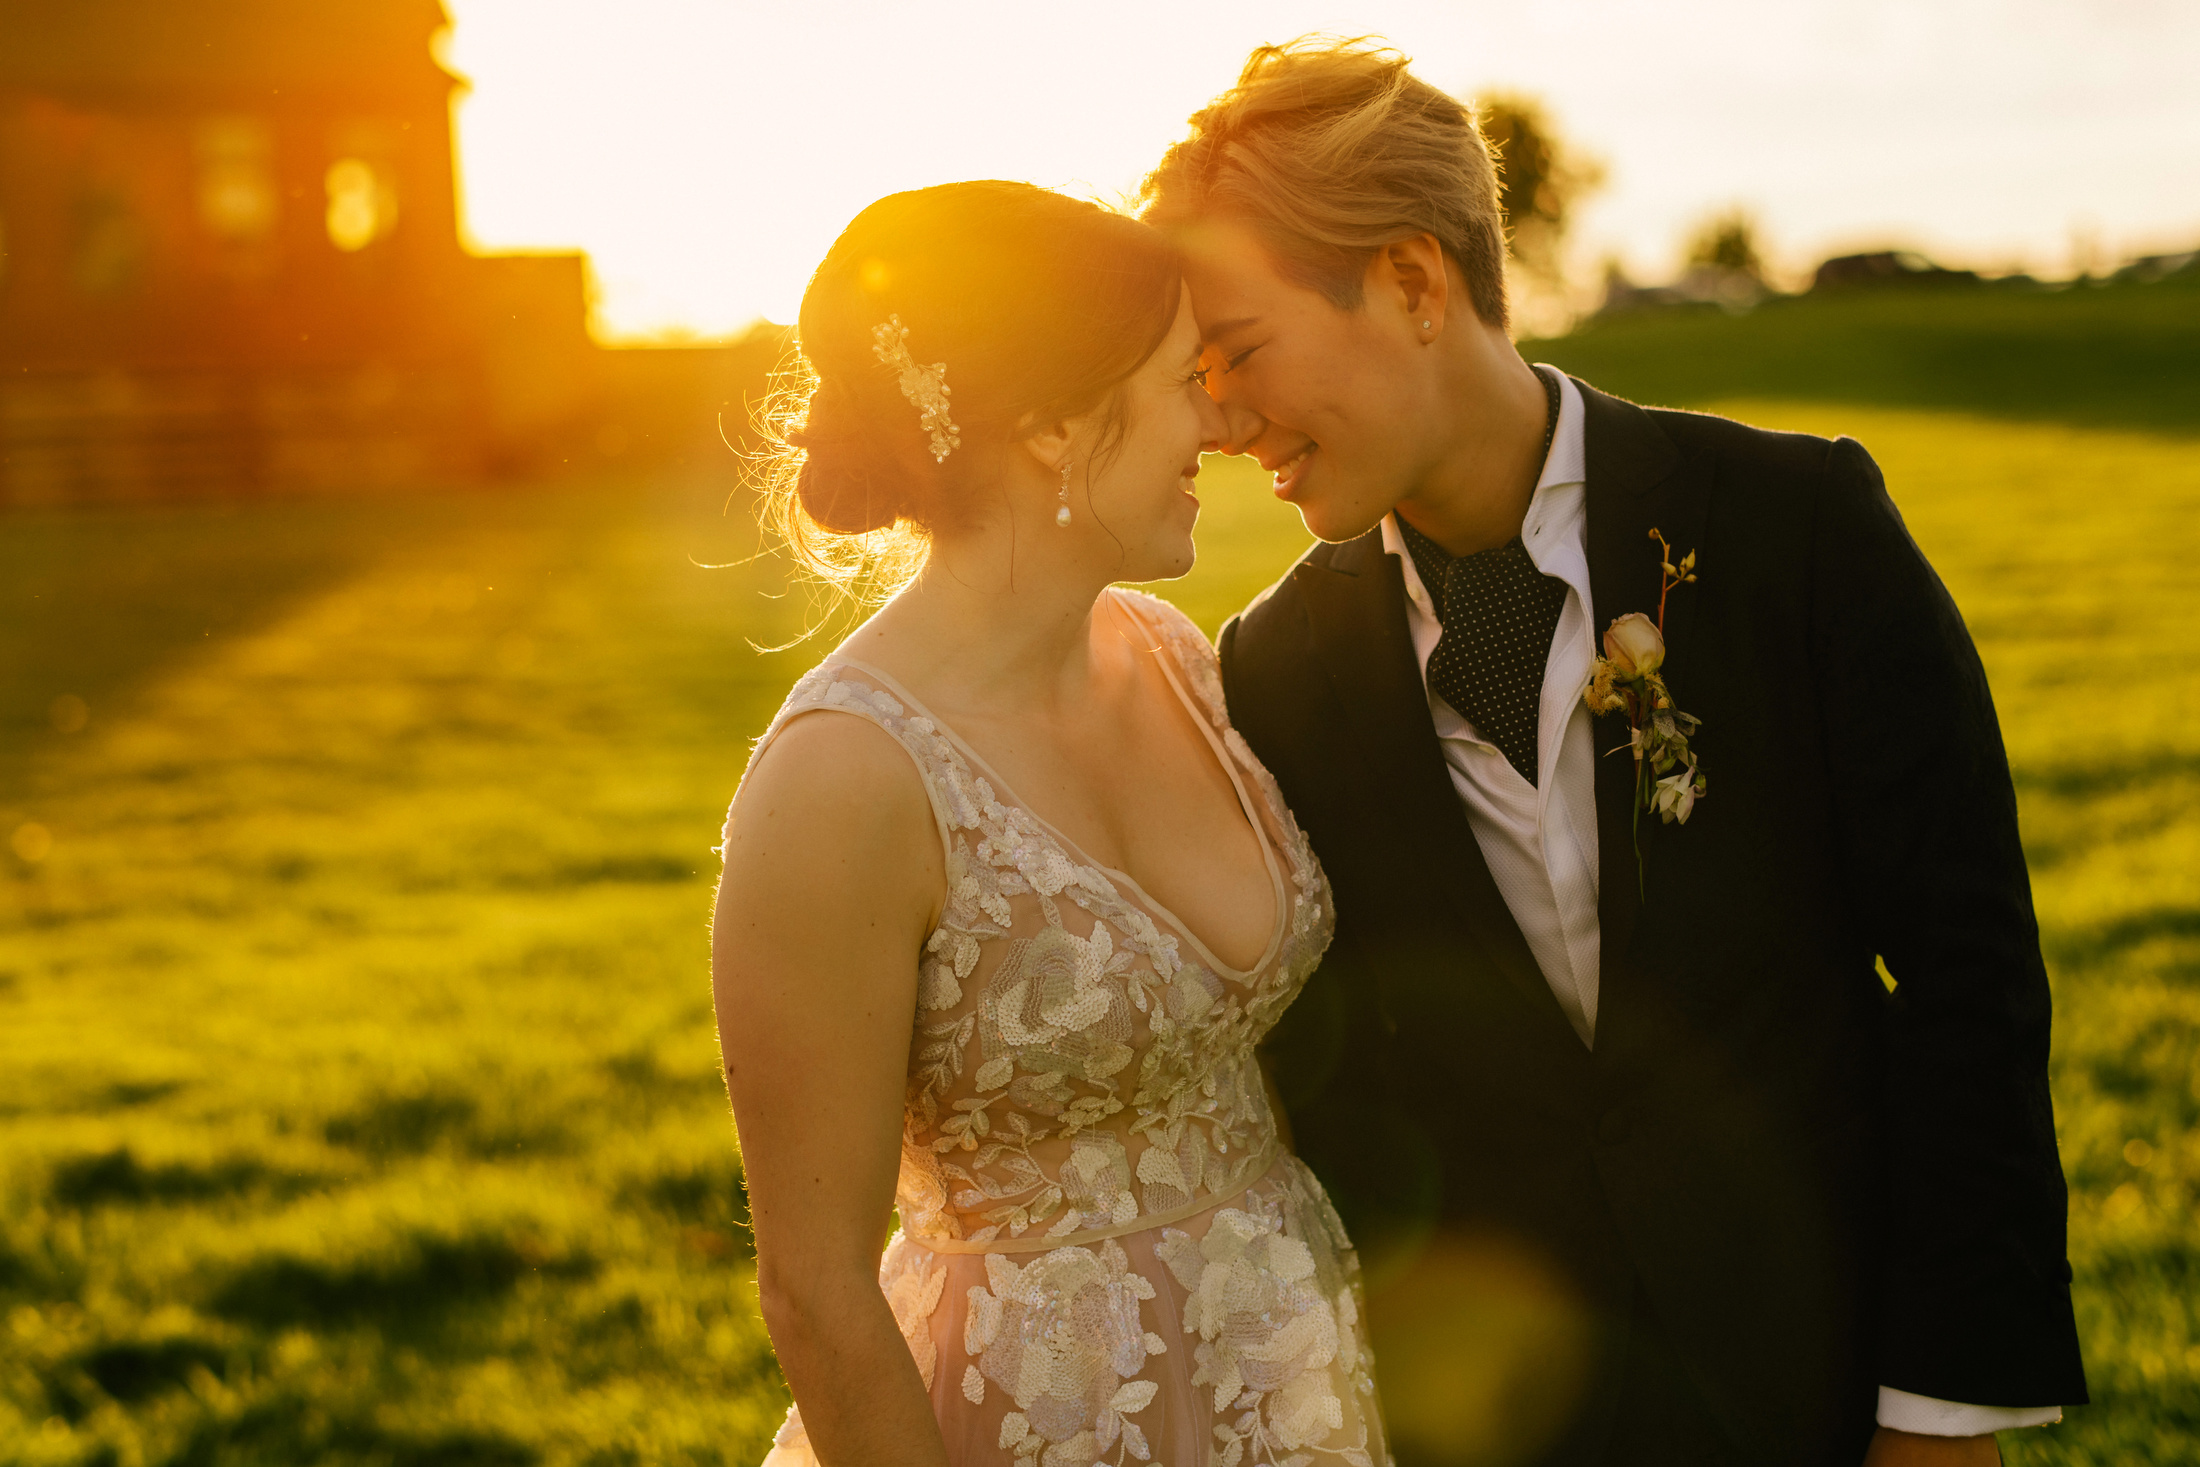 stunning sunset editorial celebrity portraits for weddings in new england